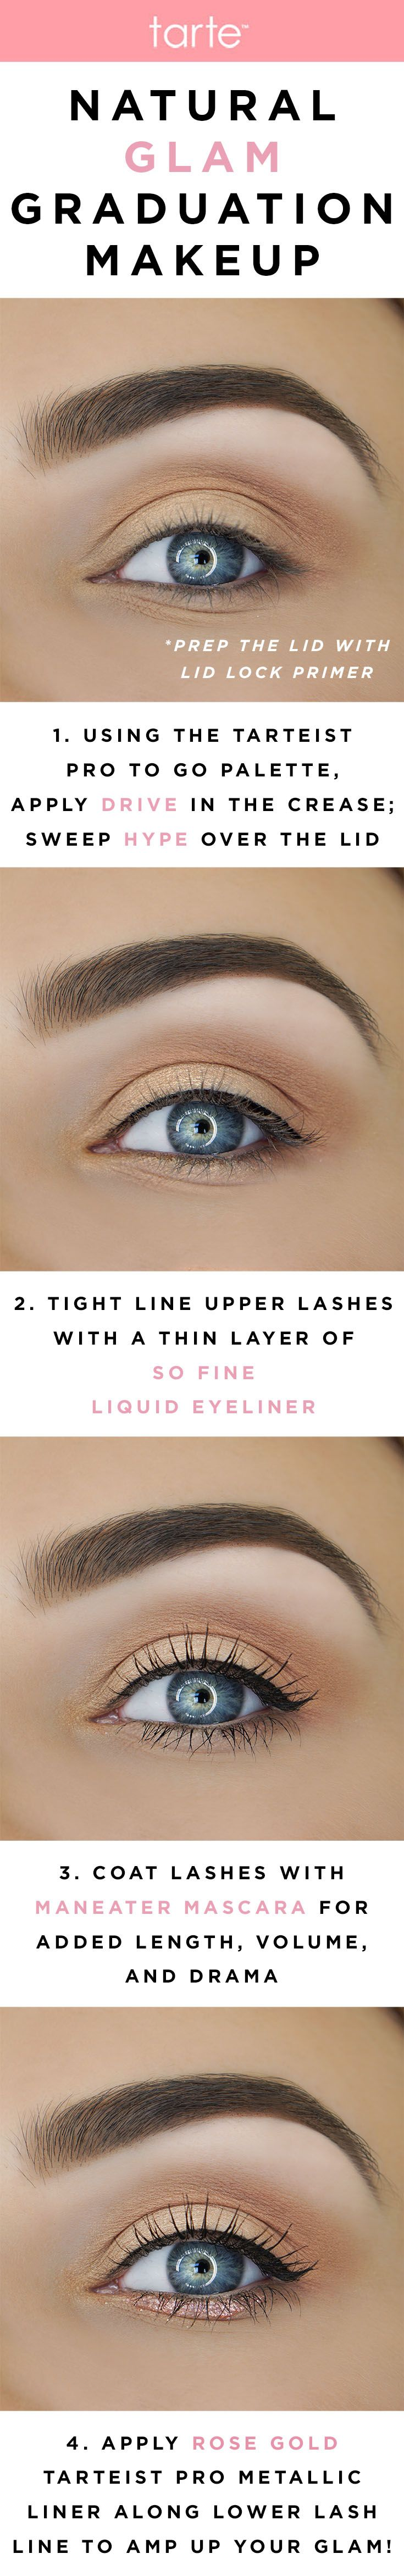 A step-by-step tutorial on creating the perfect natural glam eye look for graduation! #tartecosmetics #classof2017